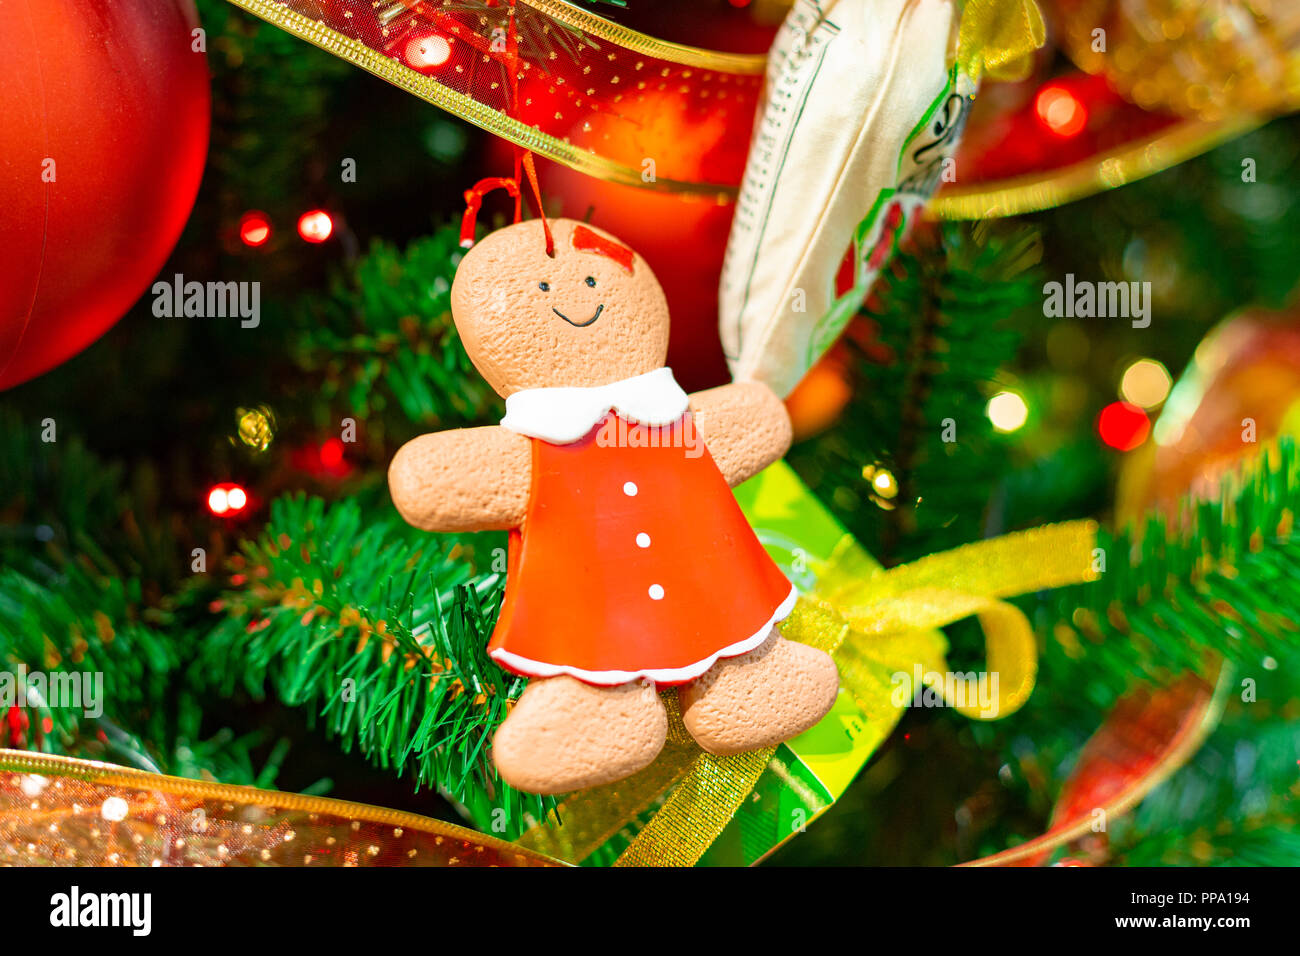 christmas tree decorations christmas tree with beautiful gingerbread man winter holidays concept